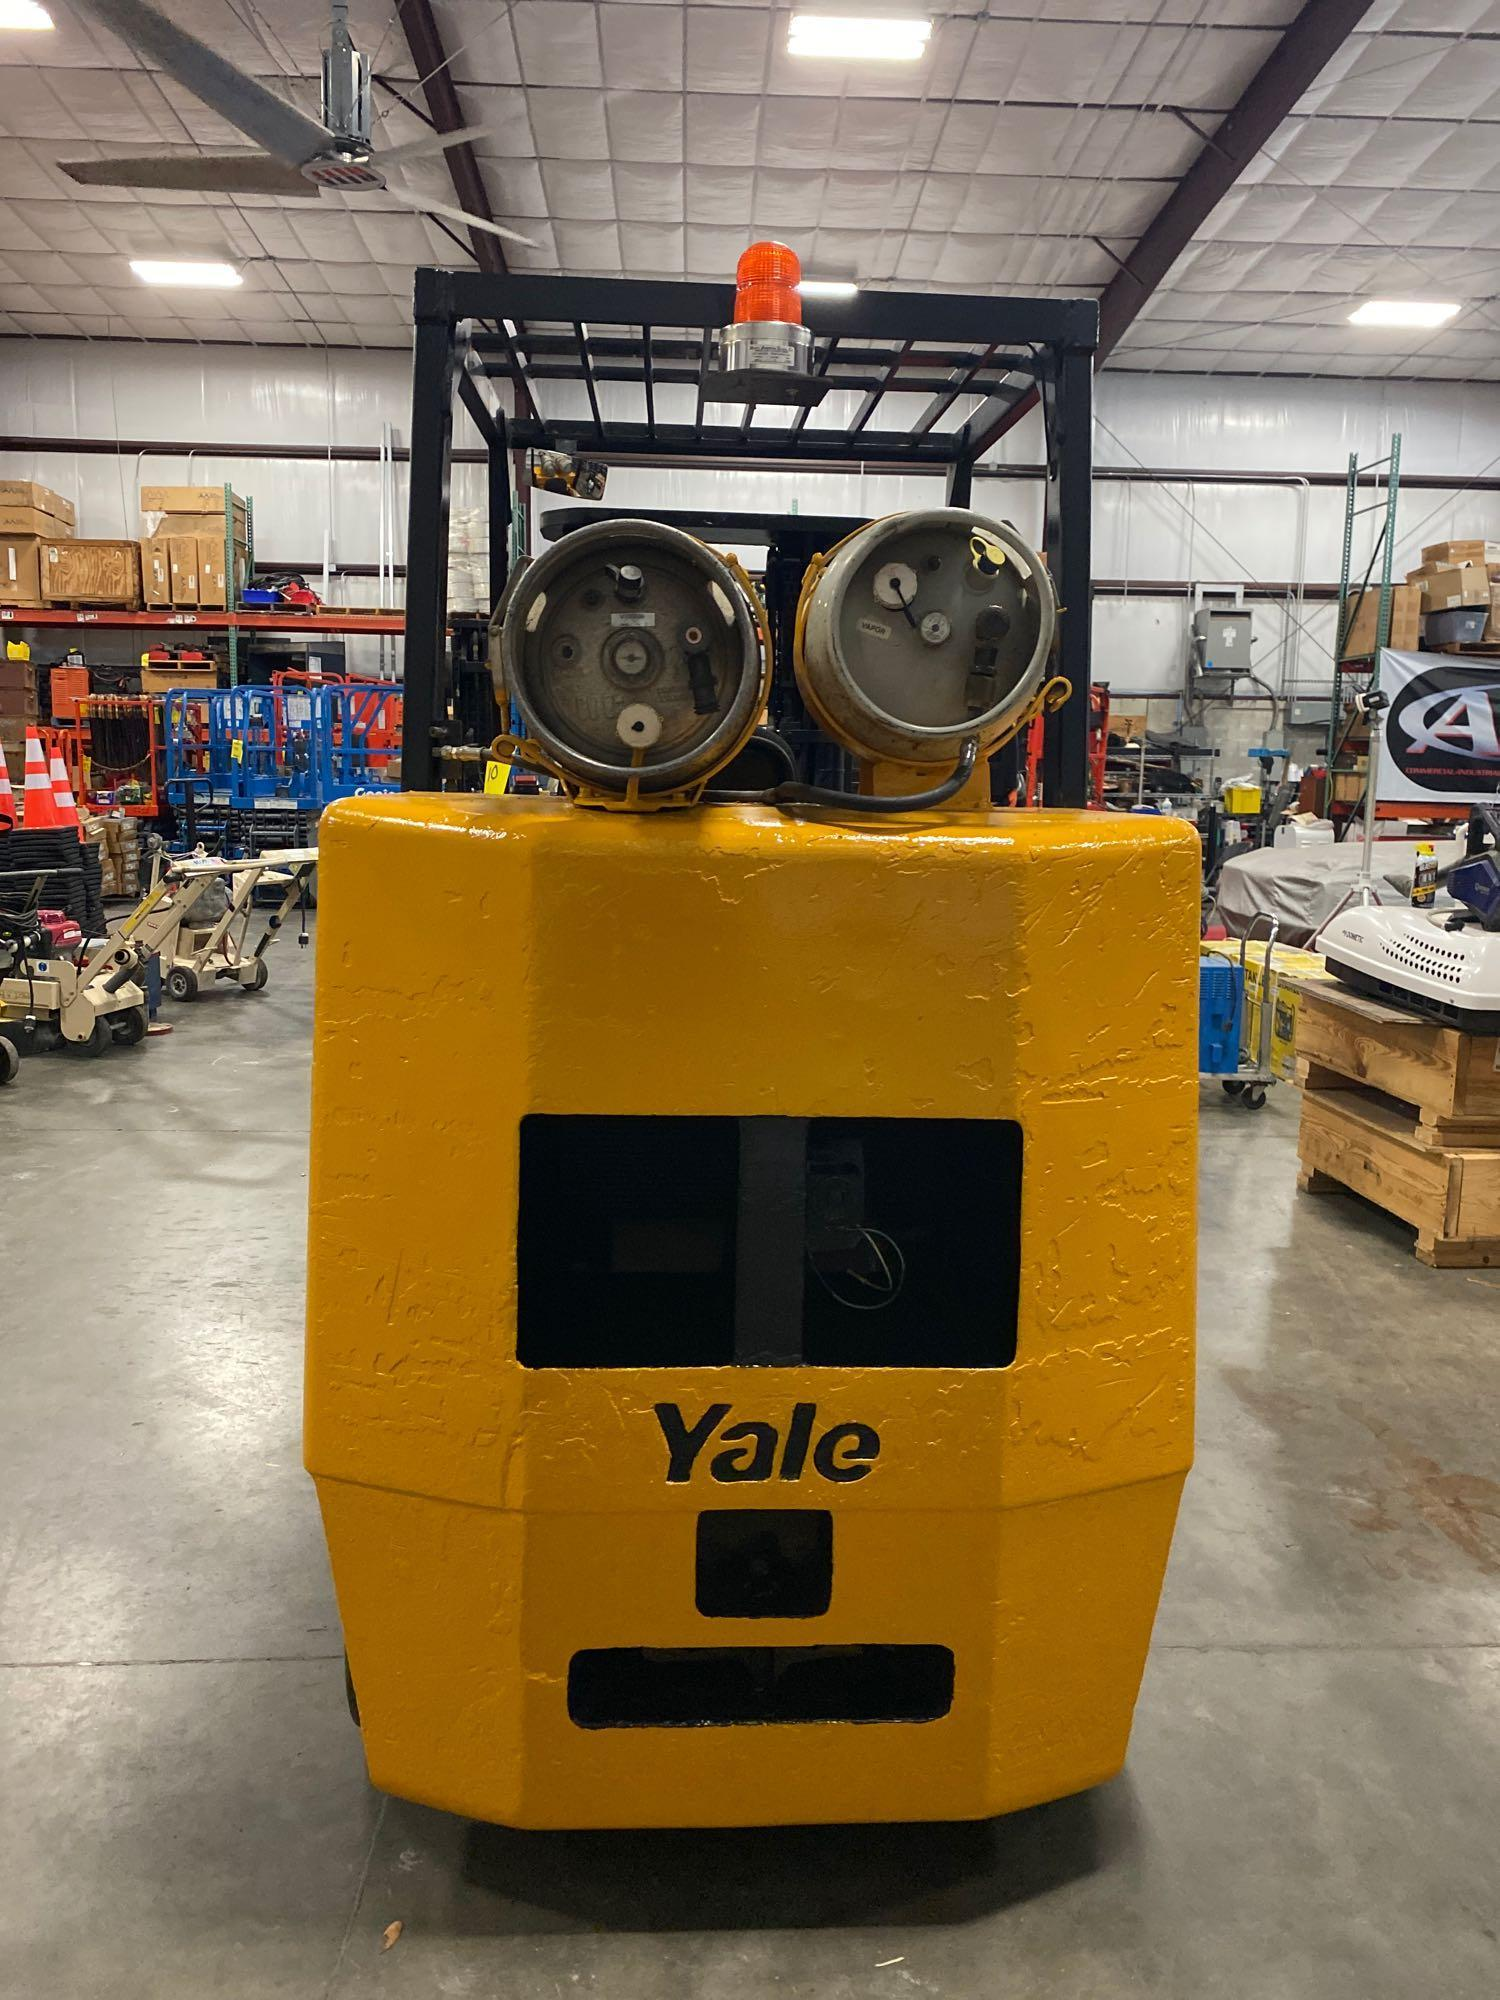 YALE LP FORKLIFT MODEL CLC120, APPROX. 12,000 LB CAPACITY, TILT, SIDE SHIFT, RUNS AND OPERATES - Image 7 of 10